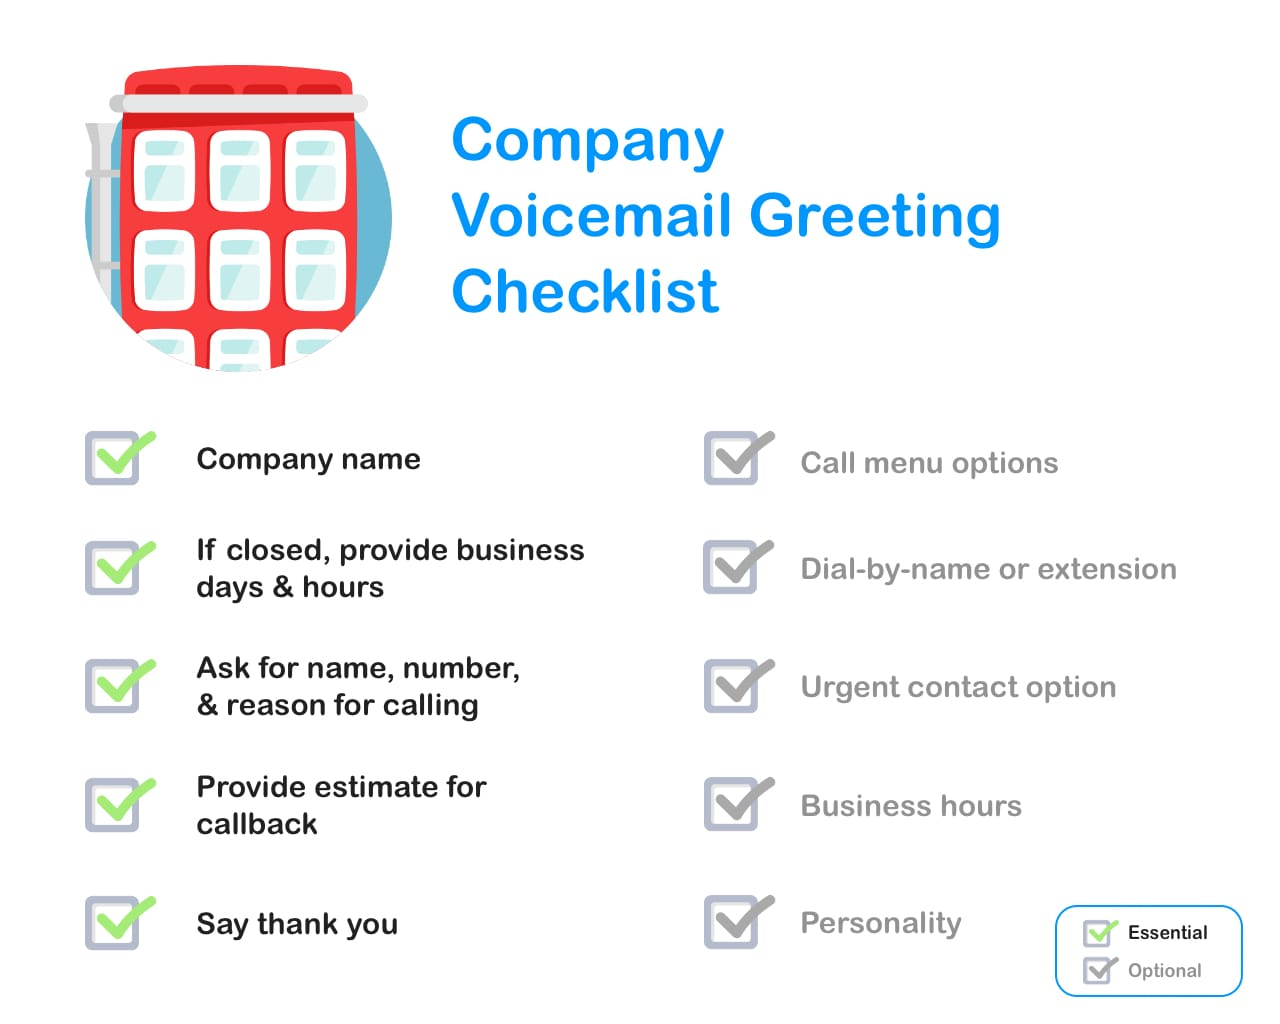 Professional Company Voicemail Greeting Checklist for Small Business